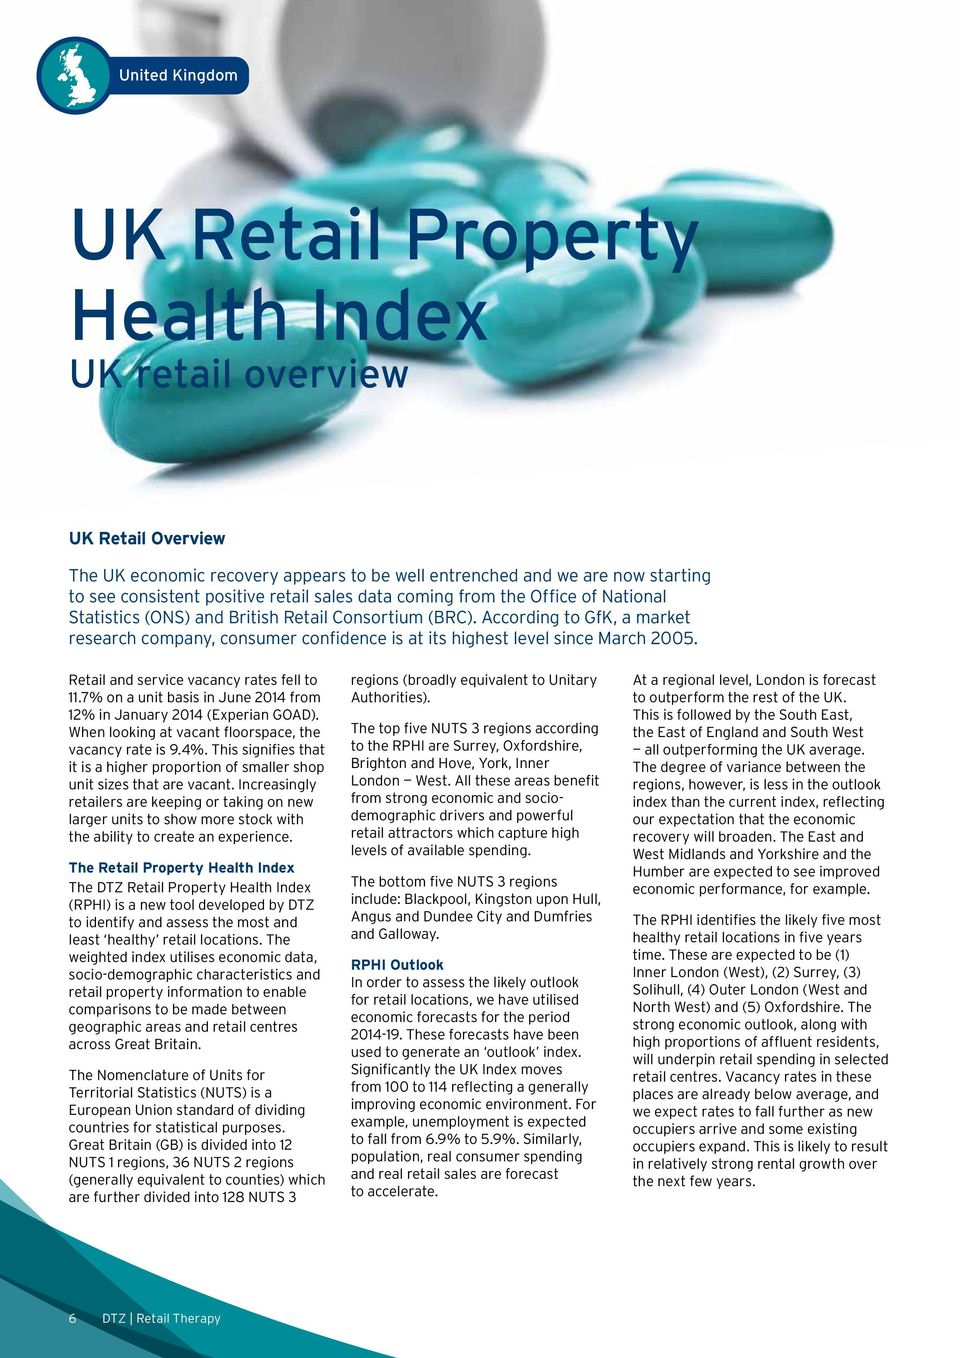 Retail and service vacancy rates fell to 11.7% on a unit basis in June 2014 from 12% in January 2014 (Experian GOAD). When looking at vacant floorspace, the vacancy rate is 9.4%.